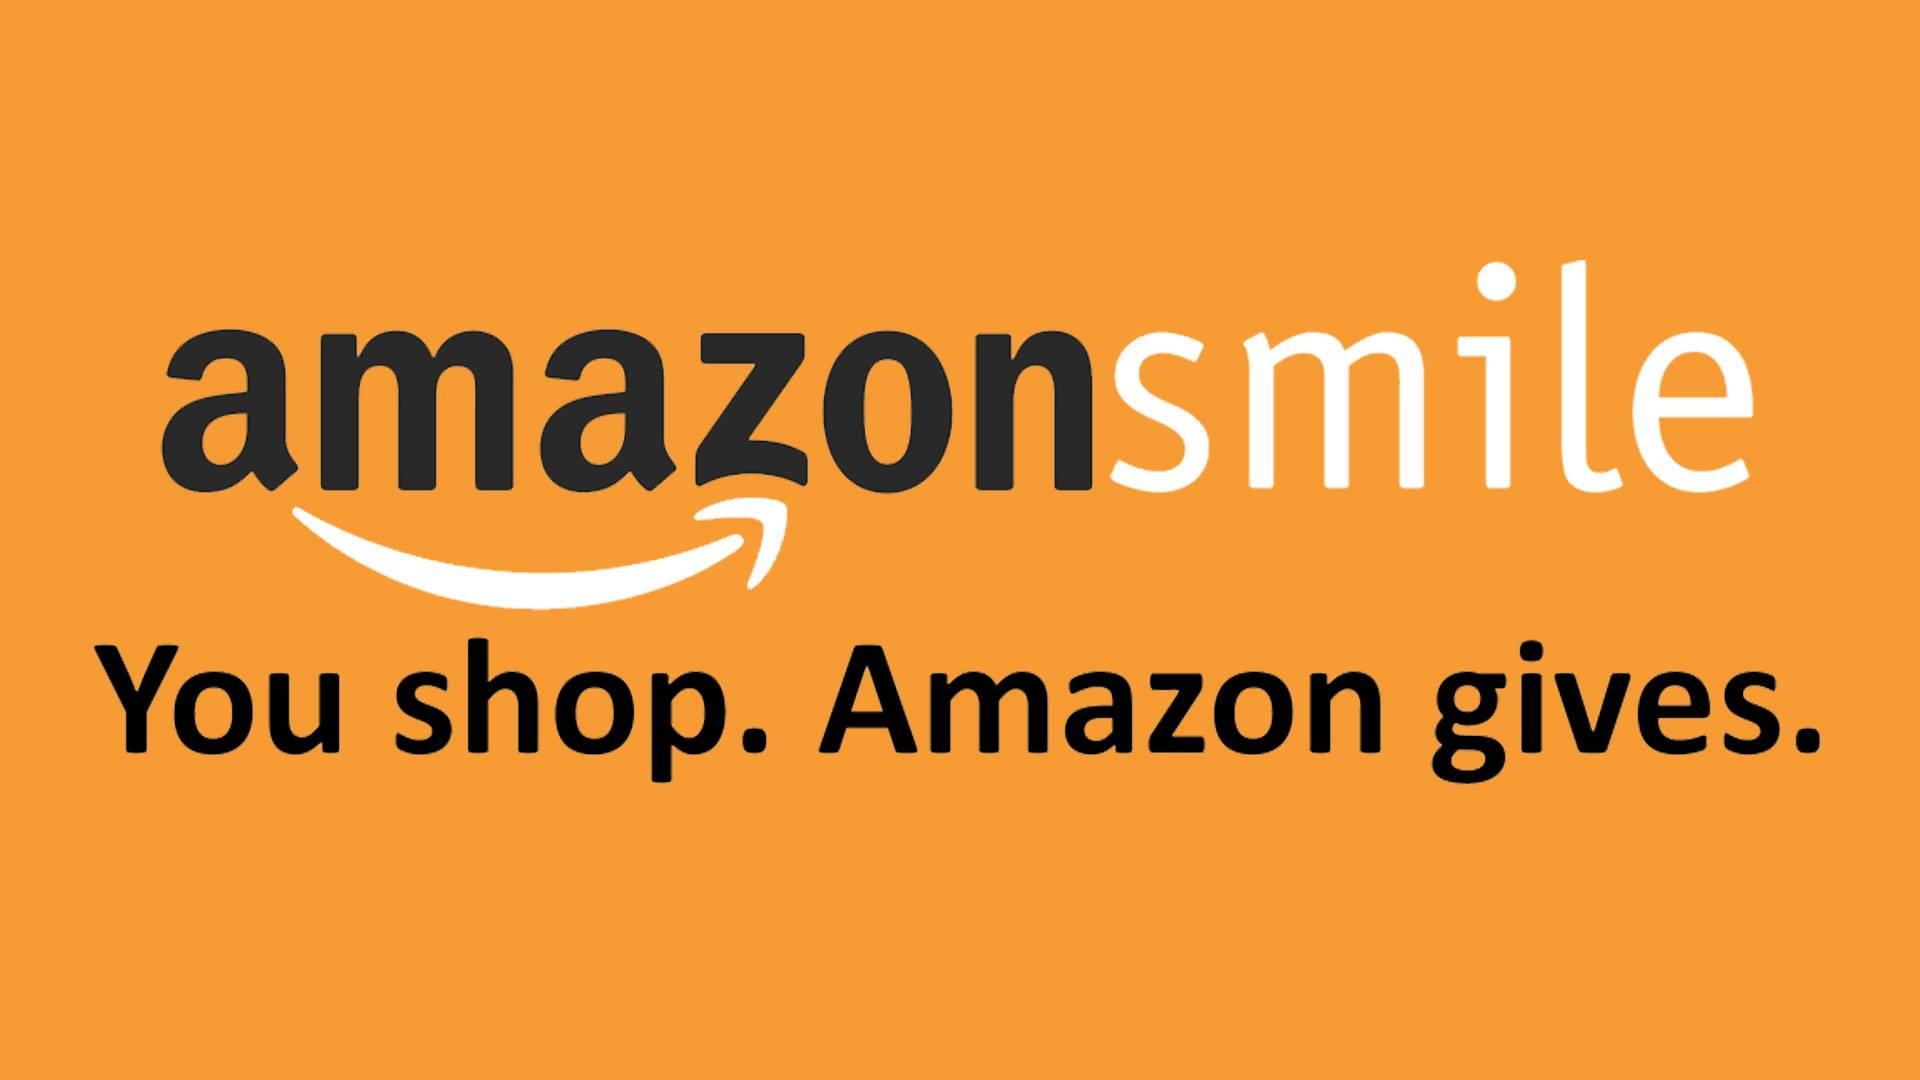 Think of Us When Shopping on Amazon